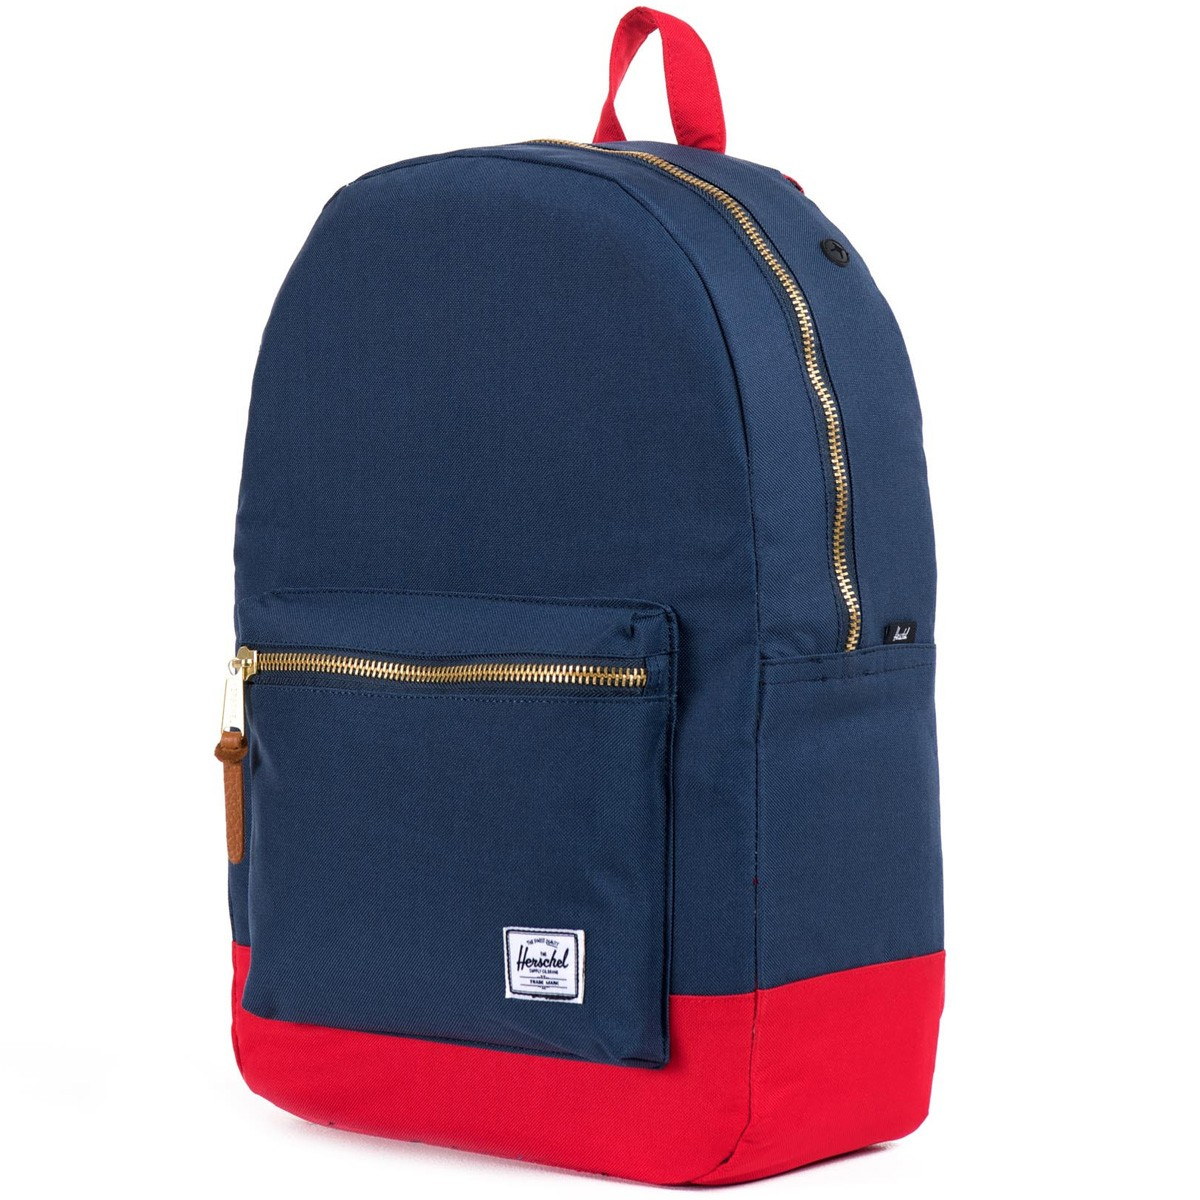 herschel settlement backpack navy red. Black Bedroom Furniture Sets. Home Design Ideas